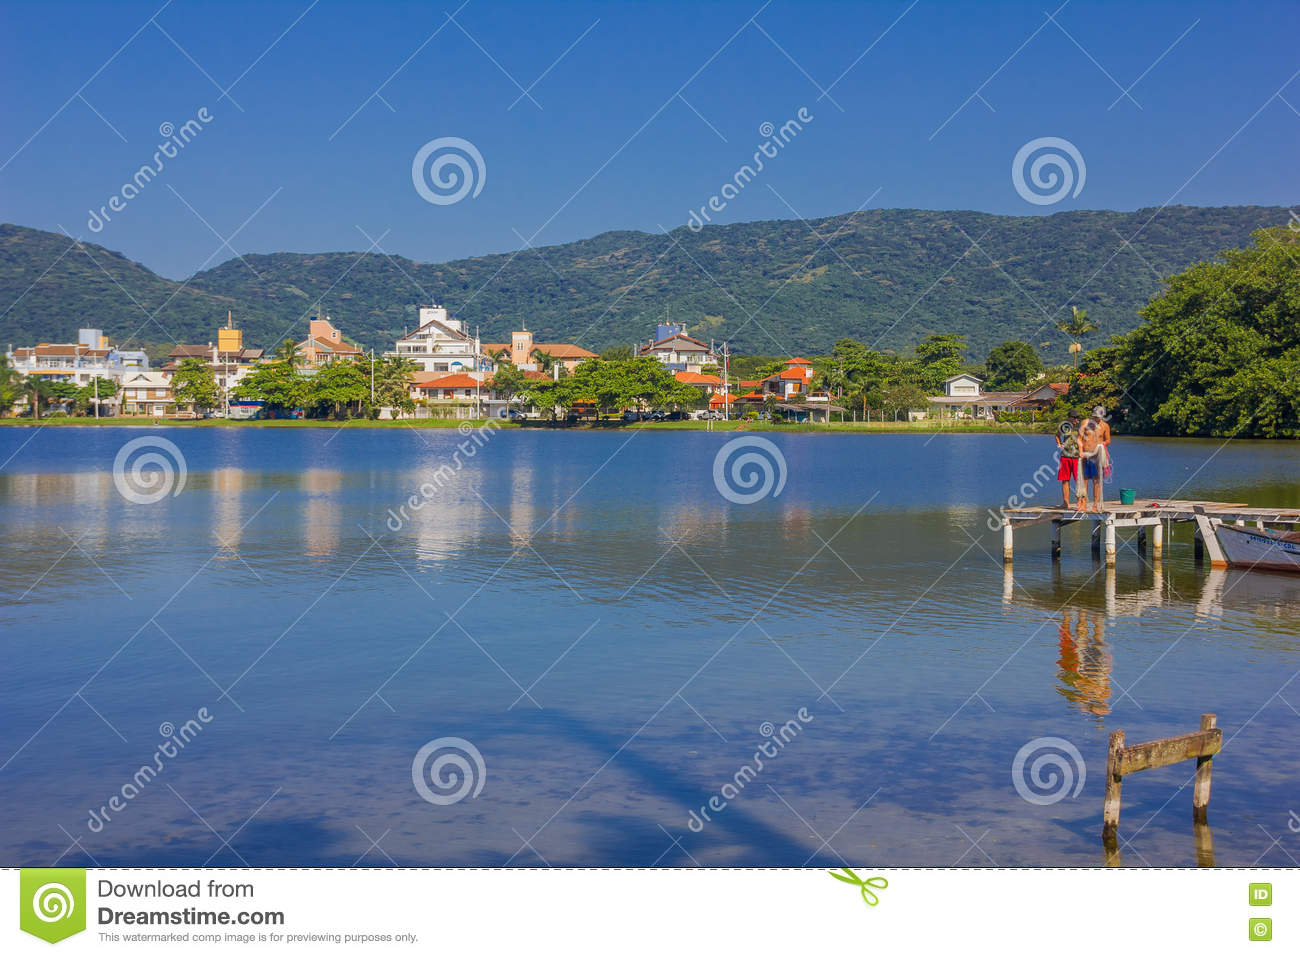 FLORIANOPOLIS, BRAZIL - MAY 08, 2016: two man standing over the dock with a fishing net, reflection of some houses on